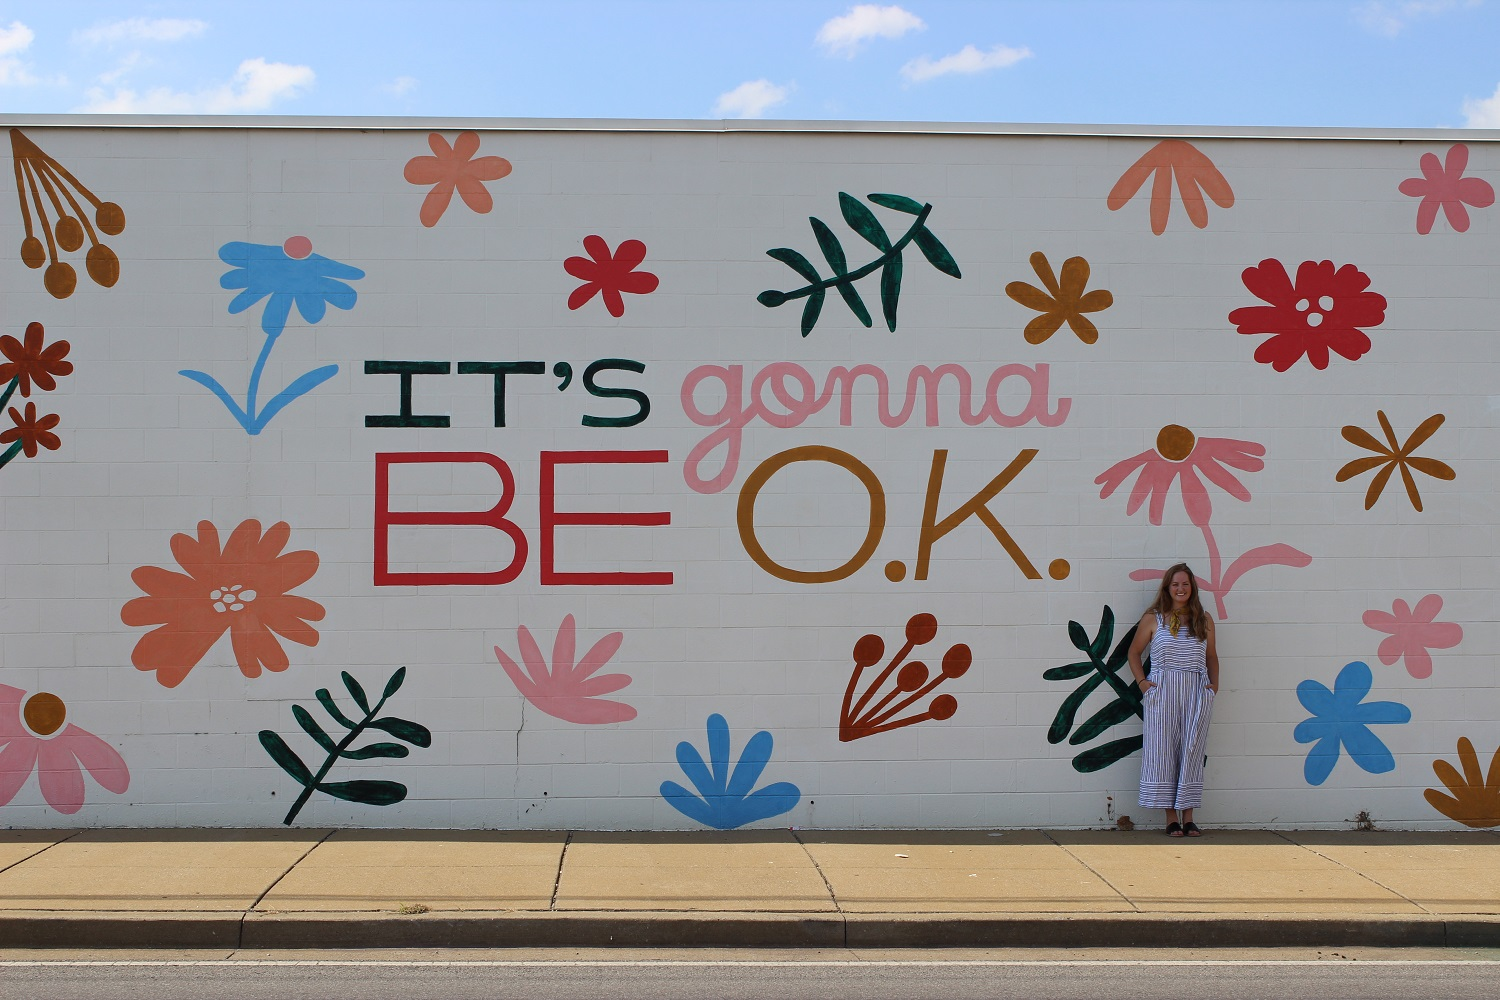 Buckingham Foundation service project with Off the Wall Nashville bringing art to the community with Sarah Liz Tate